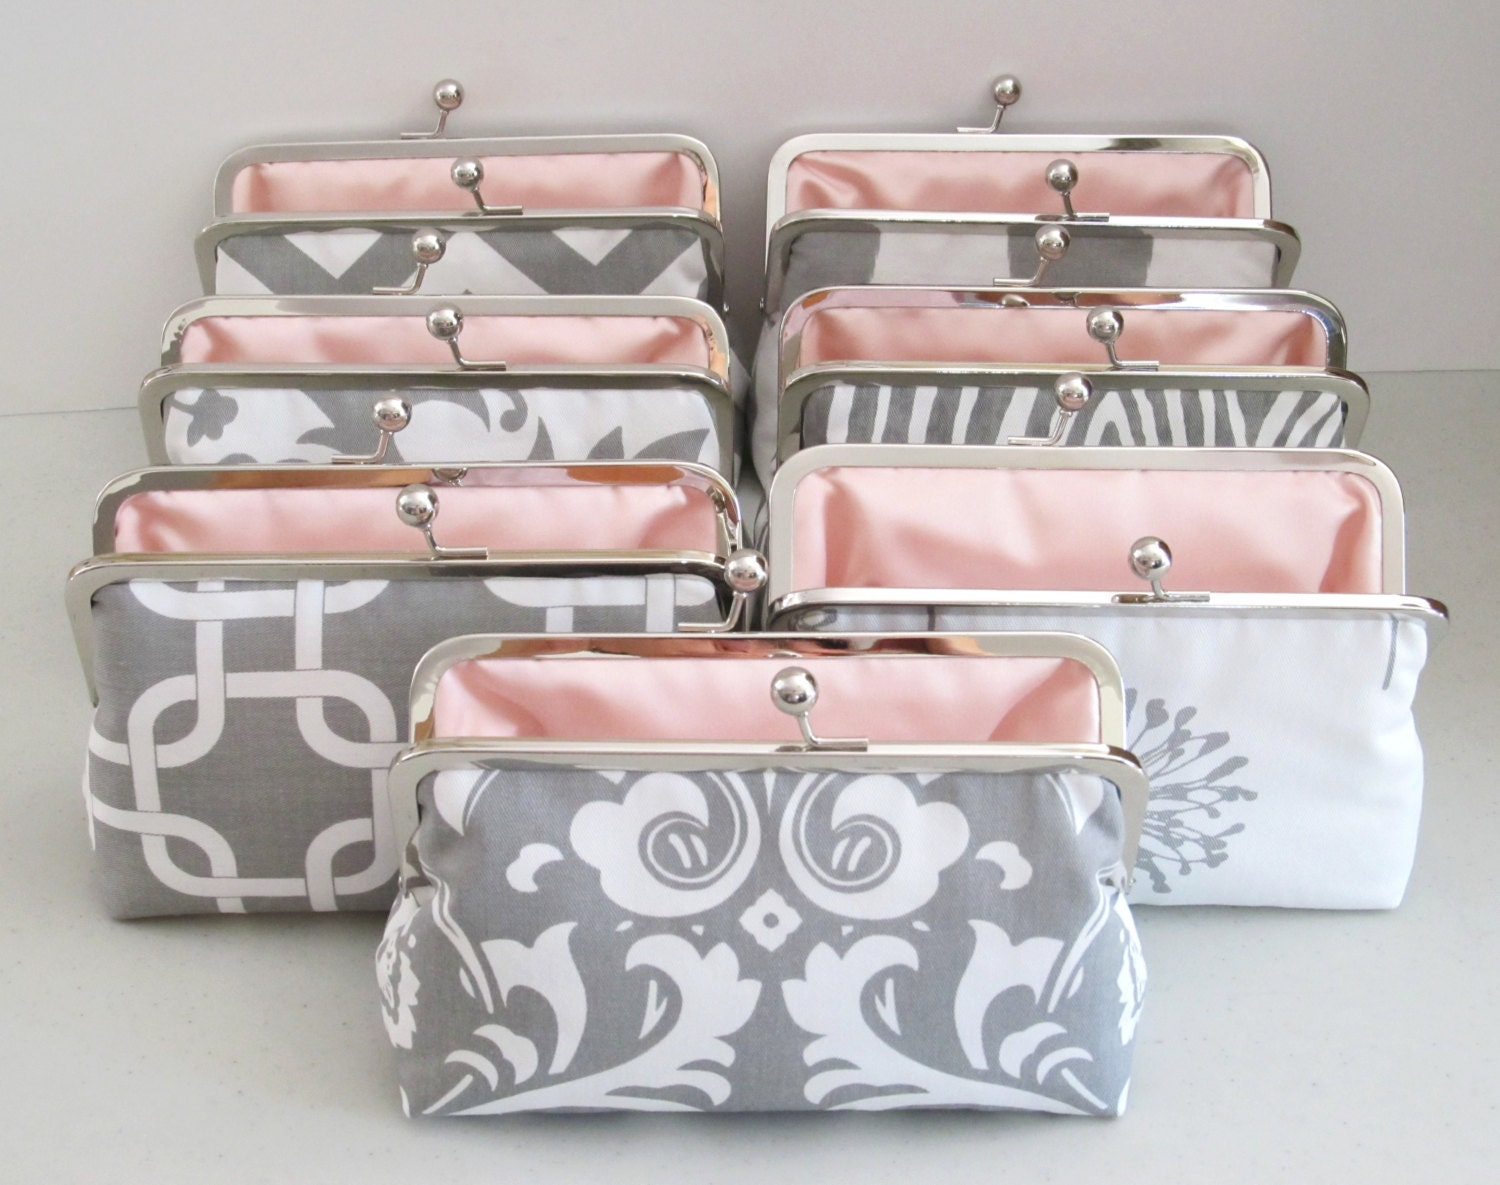 SALE 20% OFF 7 Premier Print Bridesmaid Clutches,Grey And White Custom Clutches,Bridal Accessories,Bridesmaid Gifts